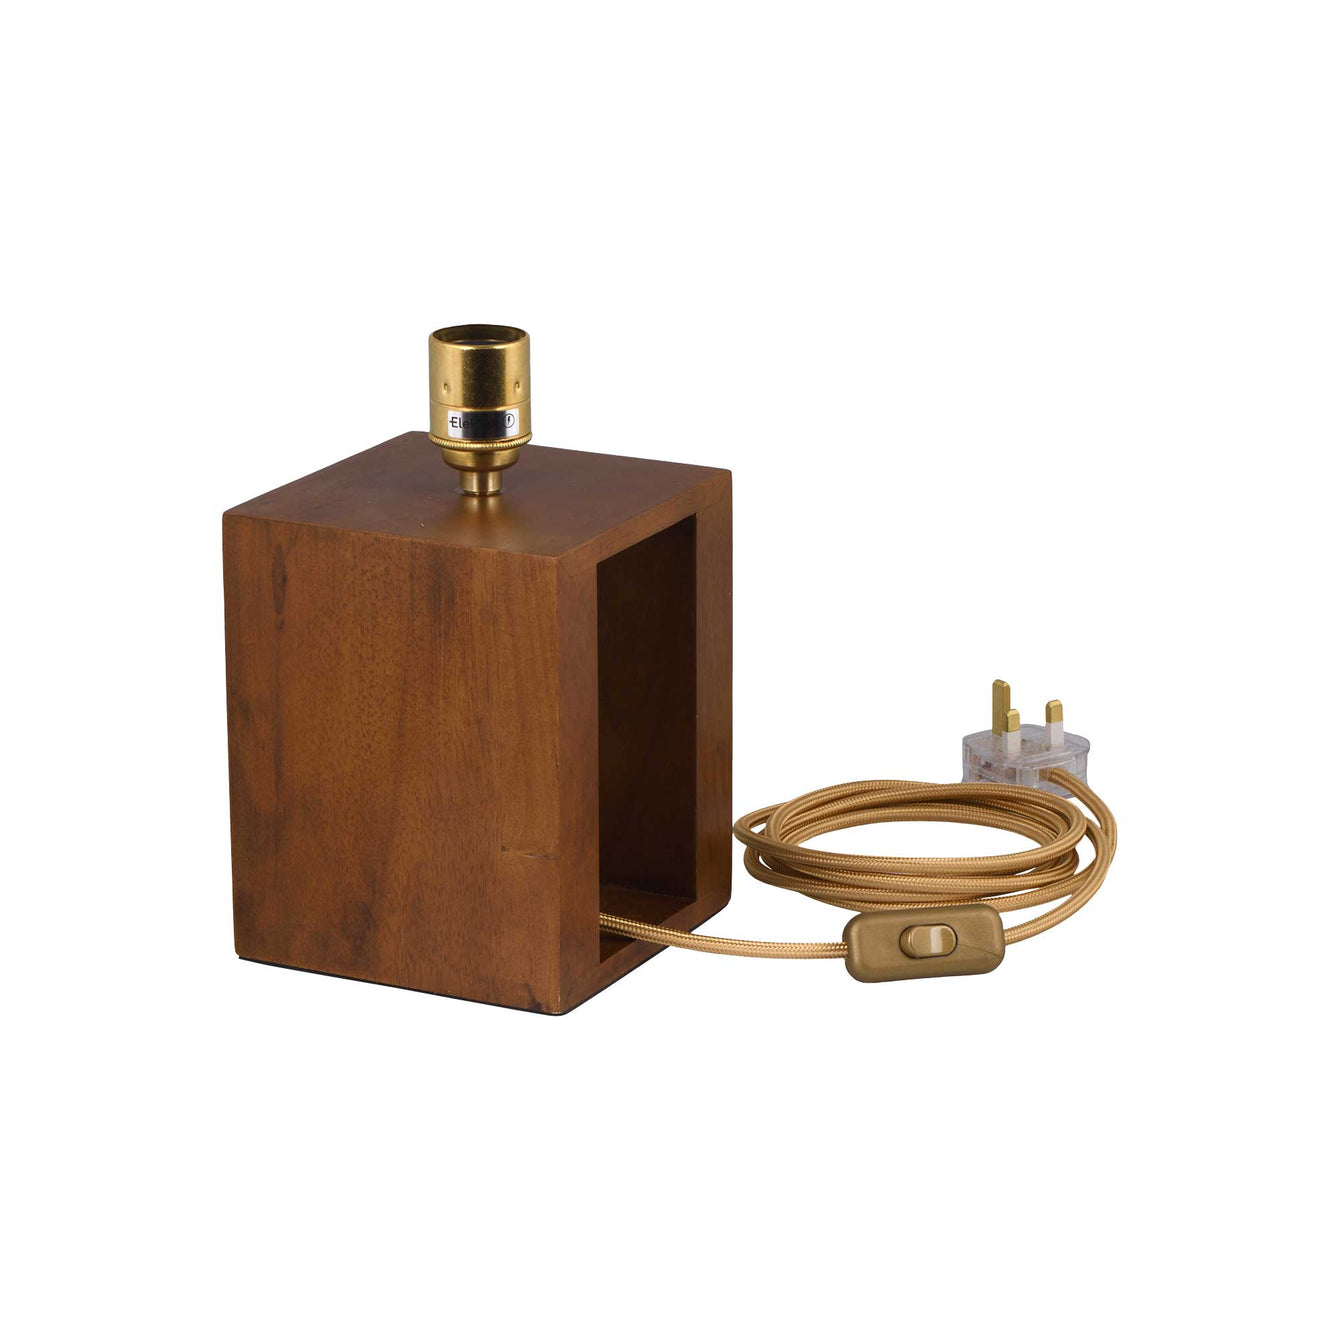 ElekTek Premium Lamp Kit Brass Plain E27 Lamp Holder with Gold Flex, In Line Switch and 3A UK Plug - Buy It Better